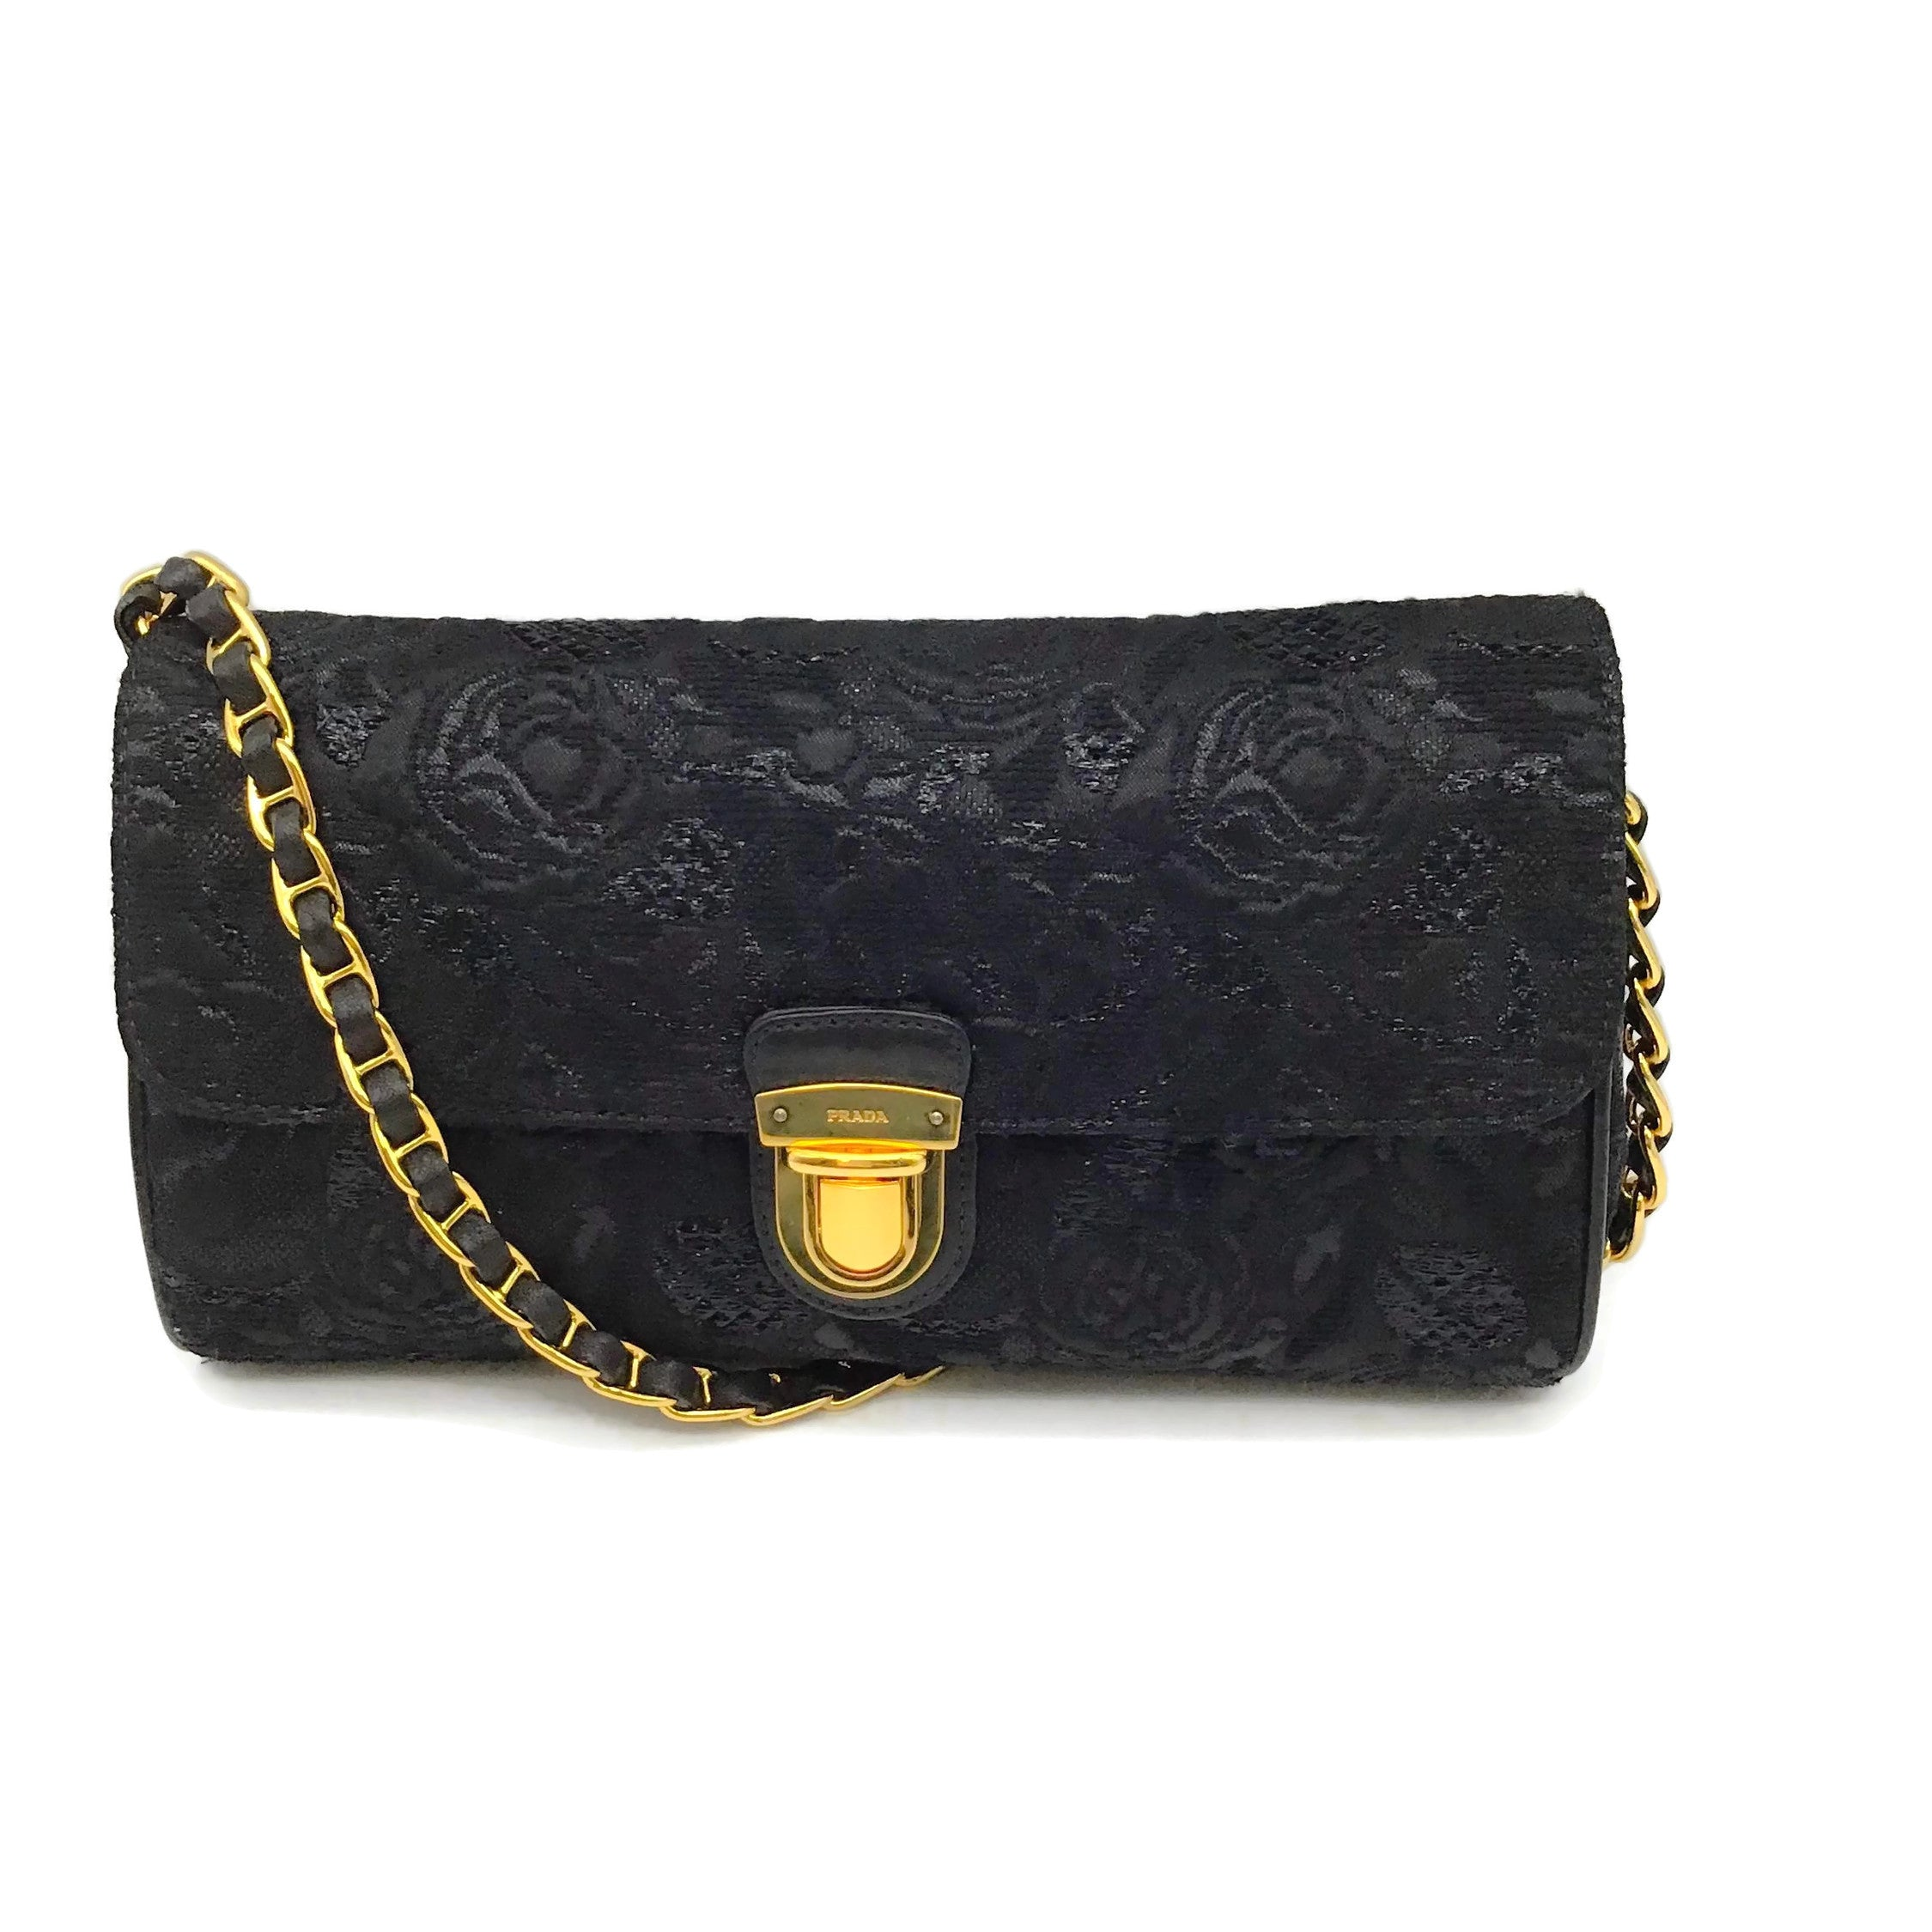 Prada Floral Black Brocade Shoulder Bag